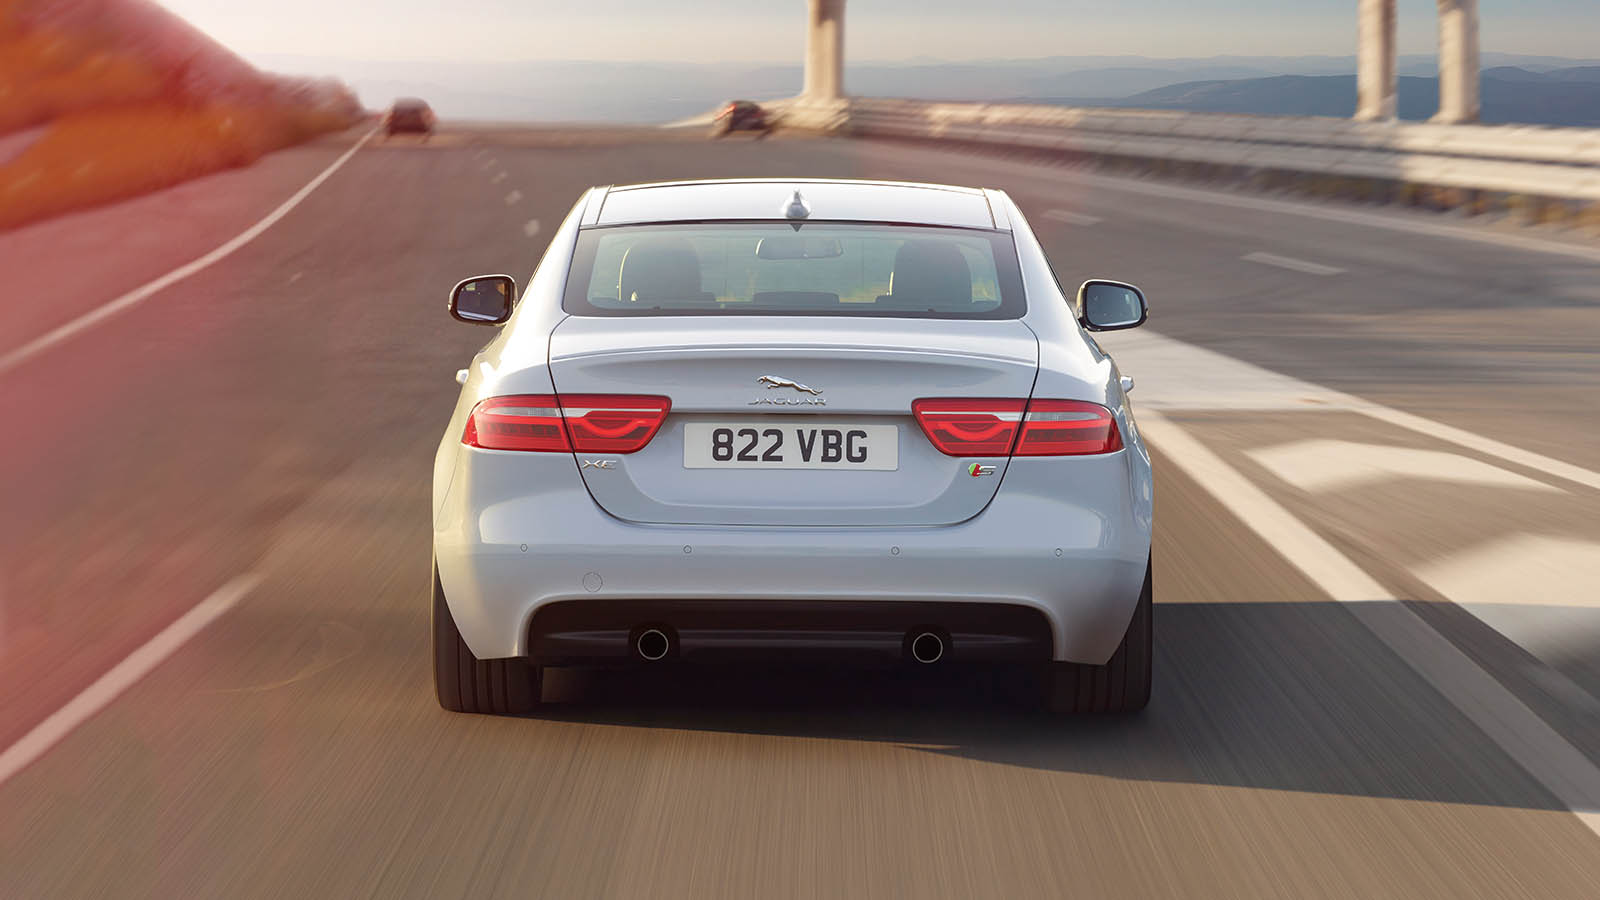 A White Jaguar XE Driving On A Highway.